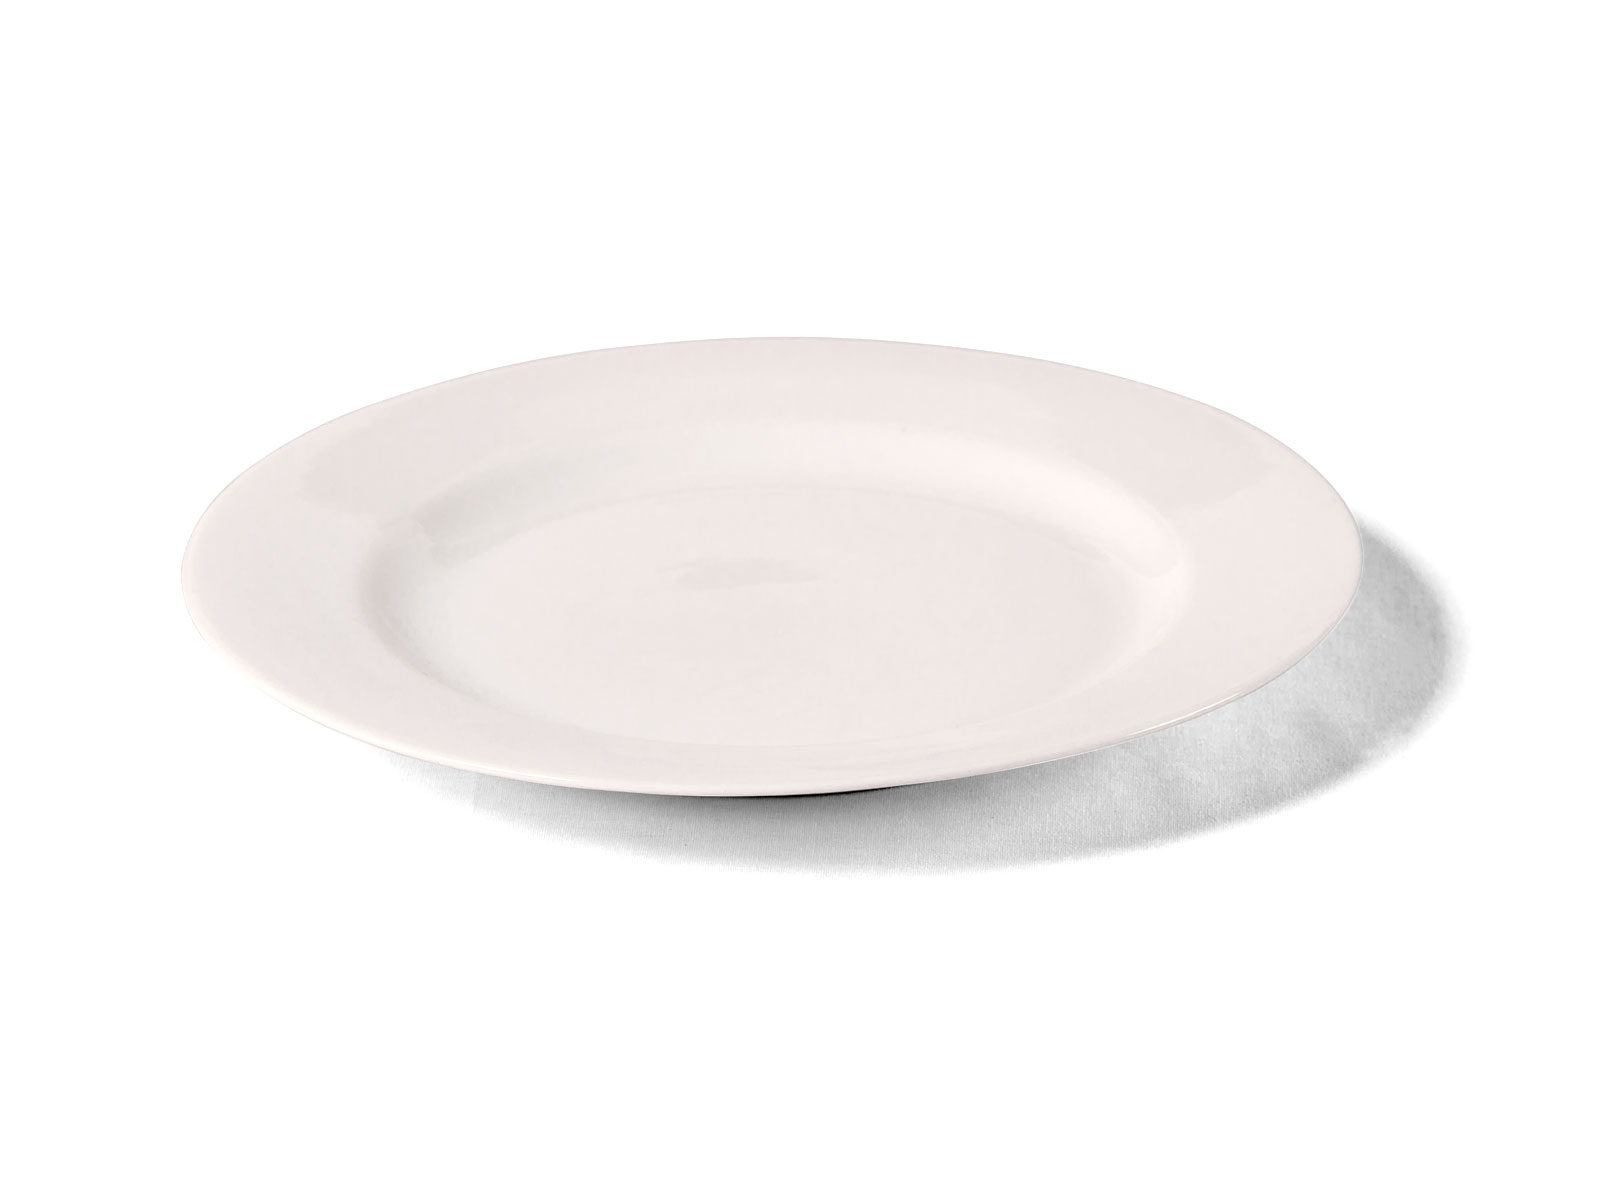 Plate – White Entree